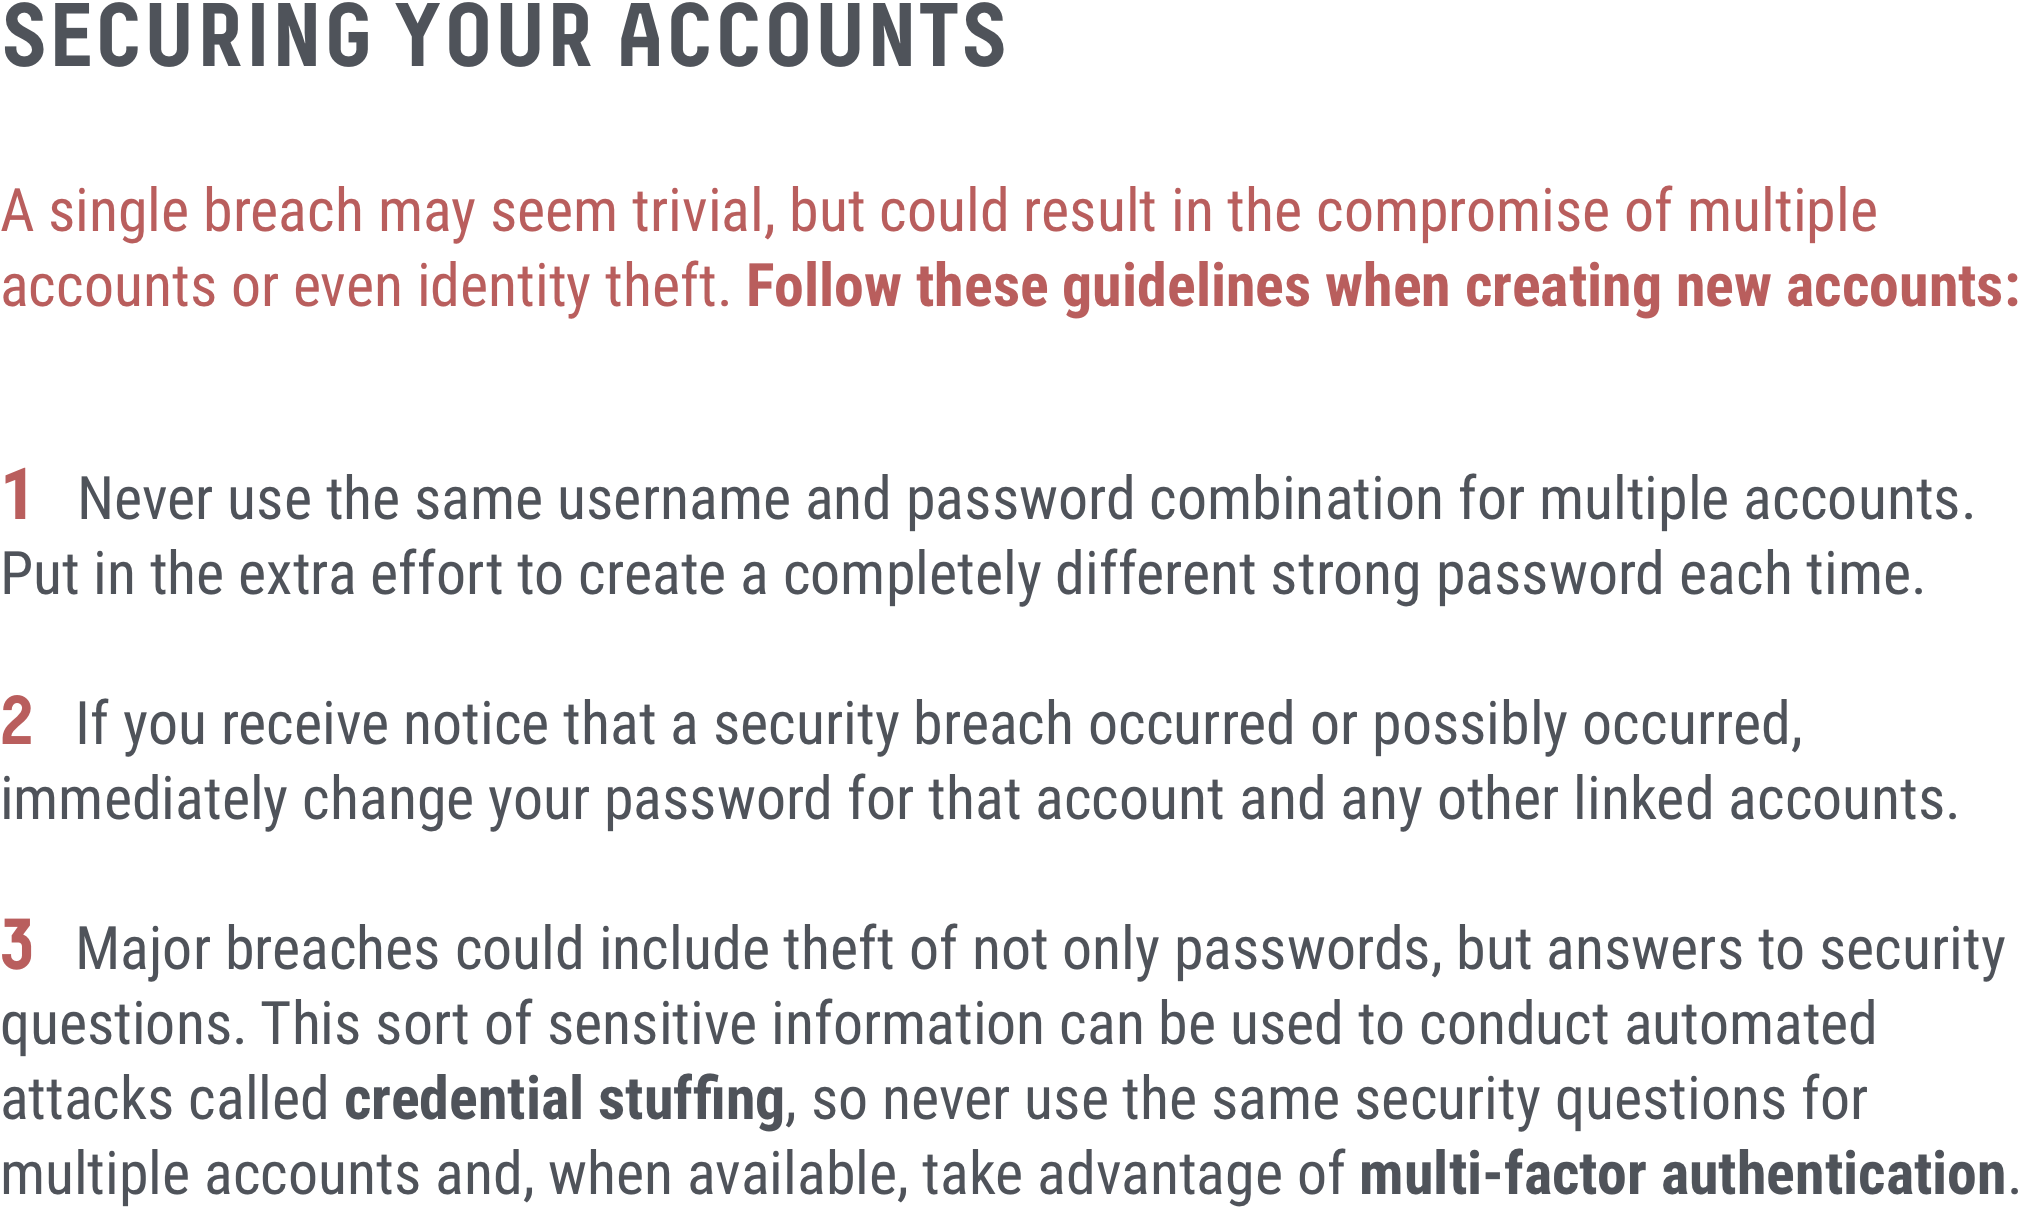 Security Tips Graphic